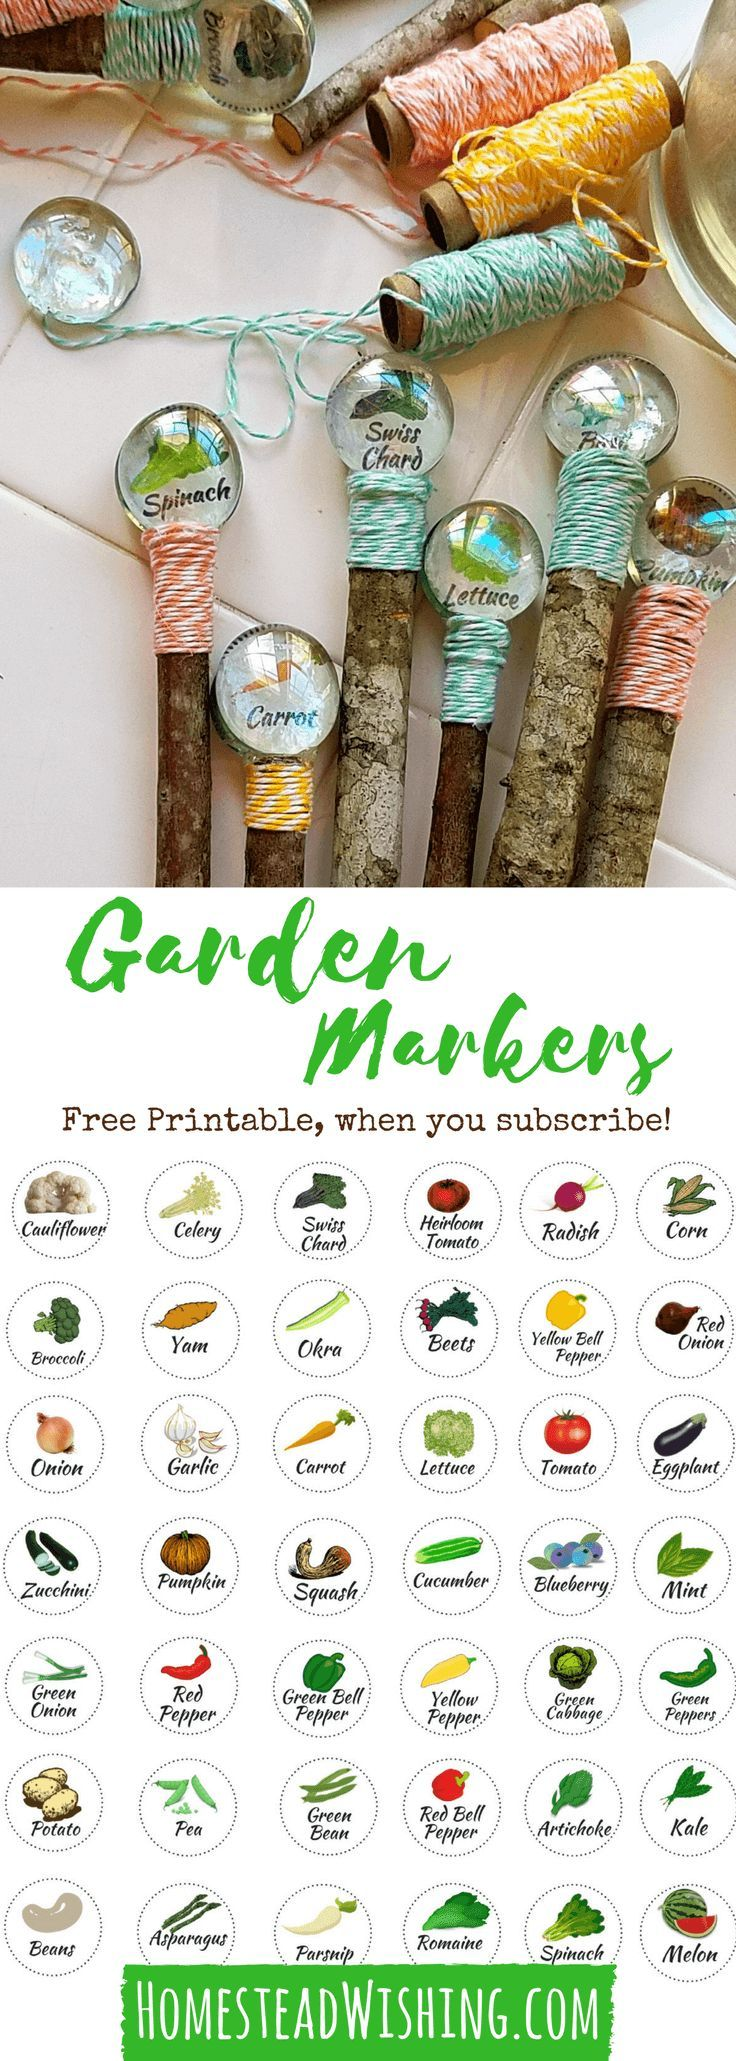 You can make your own adorable garden markers! DIY Garden Markers - Free Printable Garden Markers - Cheap Garden Markers - Glass Gem Garden Markers - Garden Marker Tutorial | http://homesteadwishing.com/diy-garden-markers/ | Homestead Wishing, Author Kristi Wheeler | Garden-markers, DIY, Crafts, Garden-crafts |